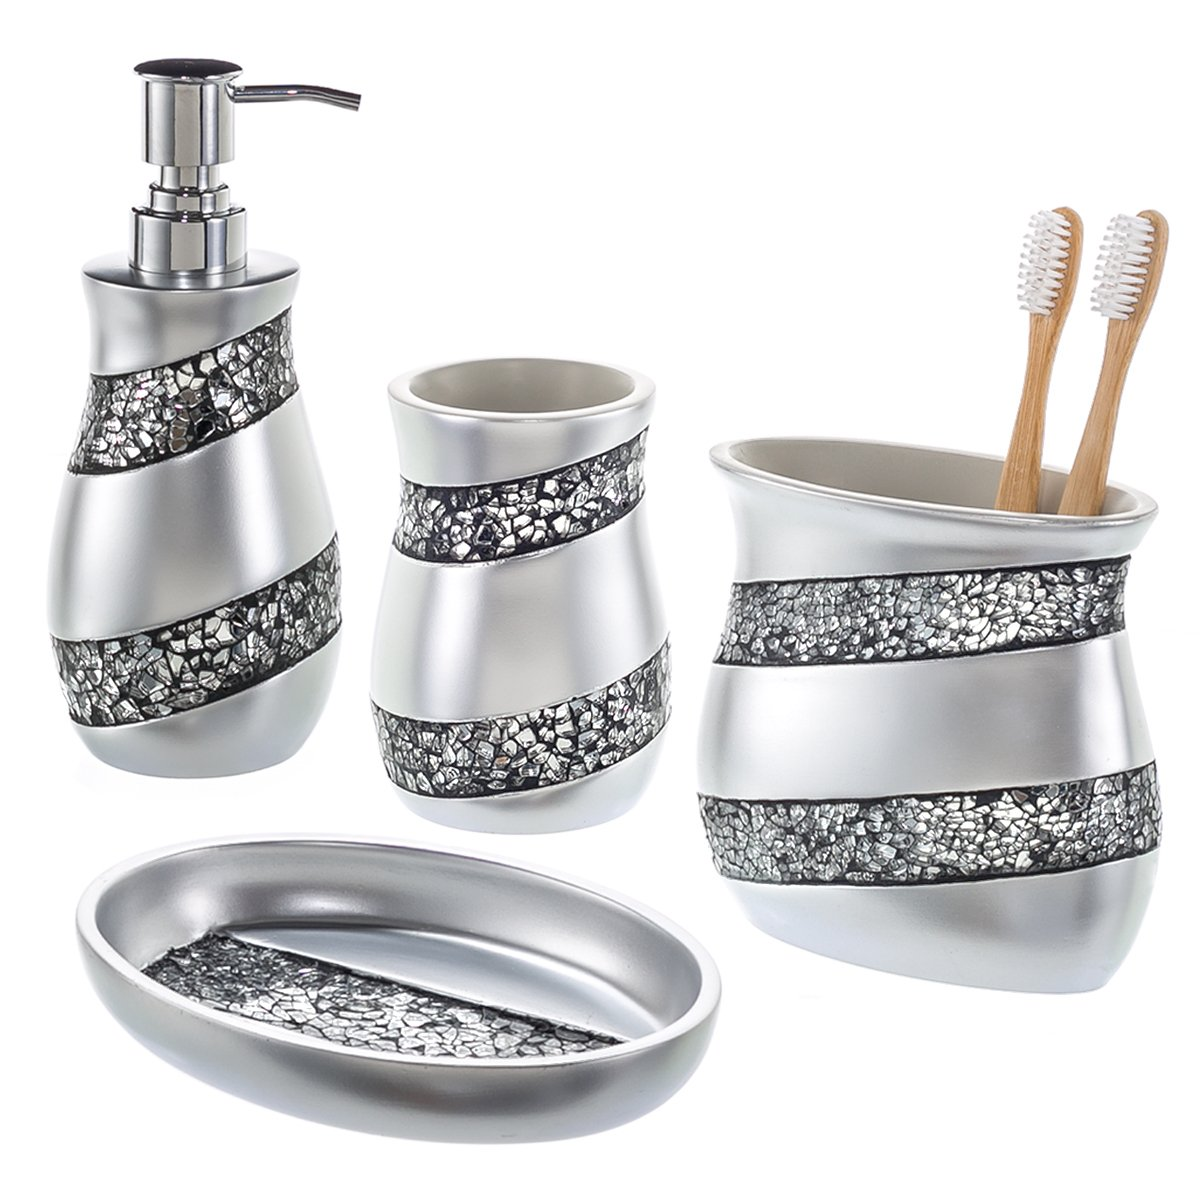 Creative Scents Bathroom Accessories Set, 4-Piece Silver Mosaic Glass Luxury Bathroom Gift Set, Includes Soap Dispenser, Toothbrush Holder, Tumbler & Soap Dish - Finished in Stunning Silver